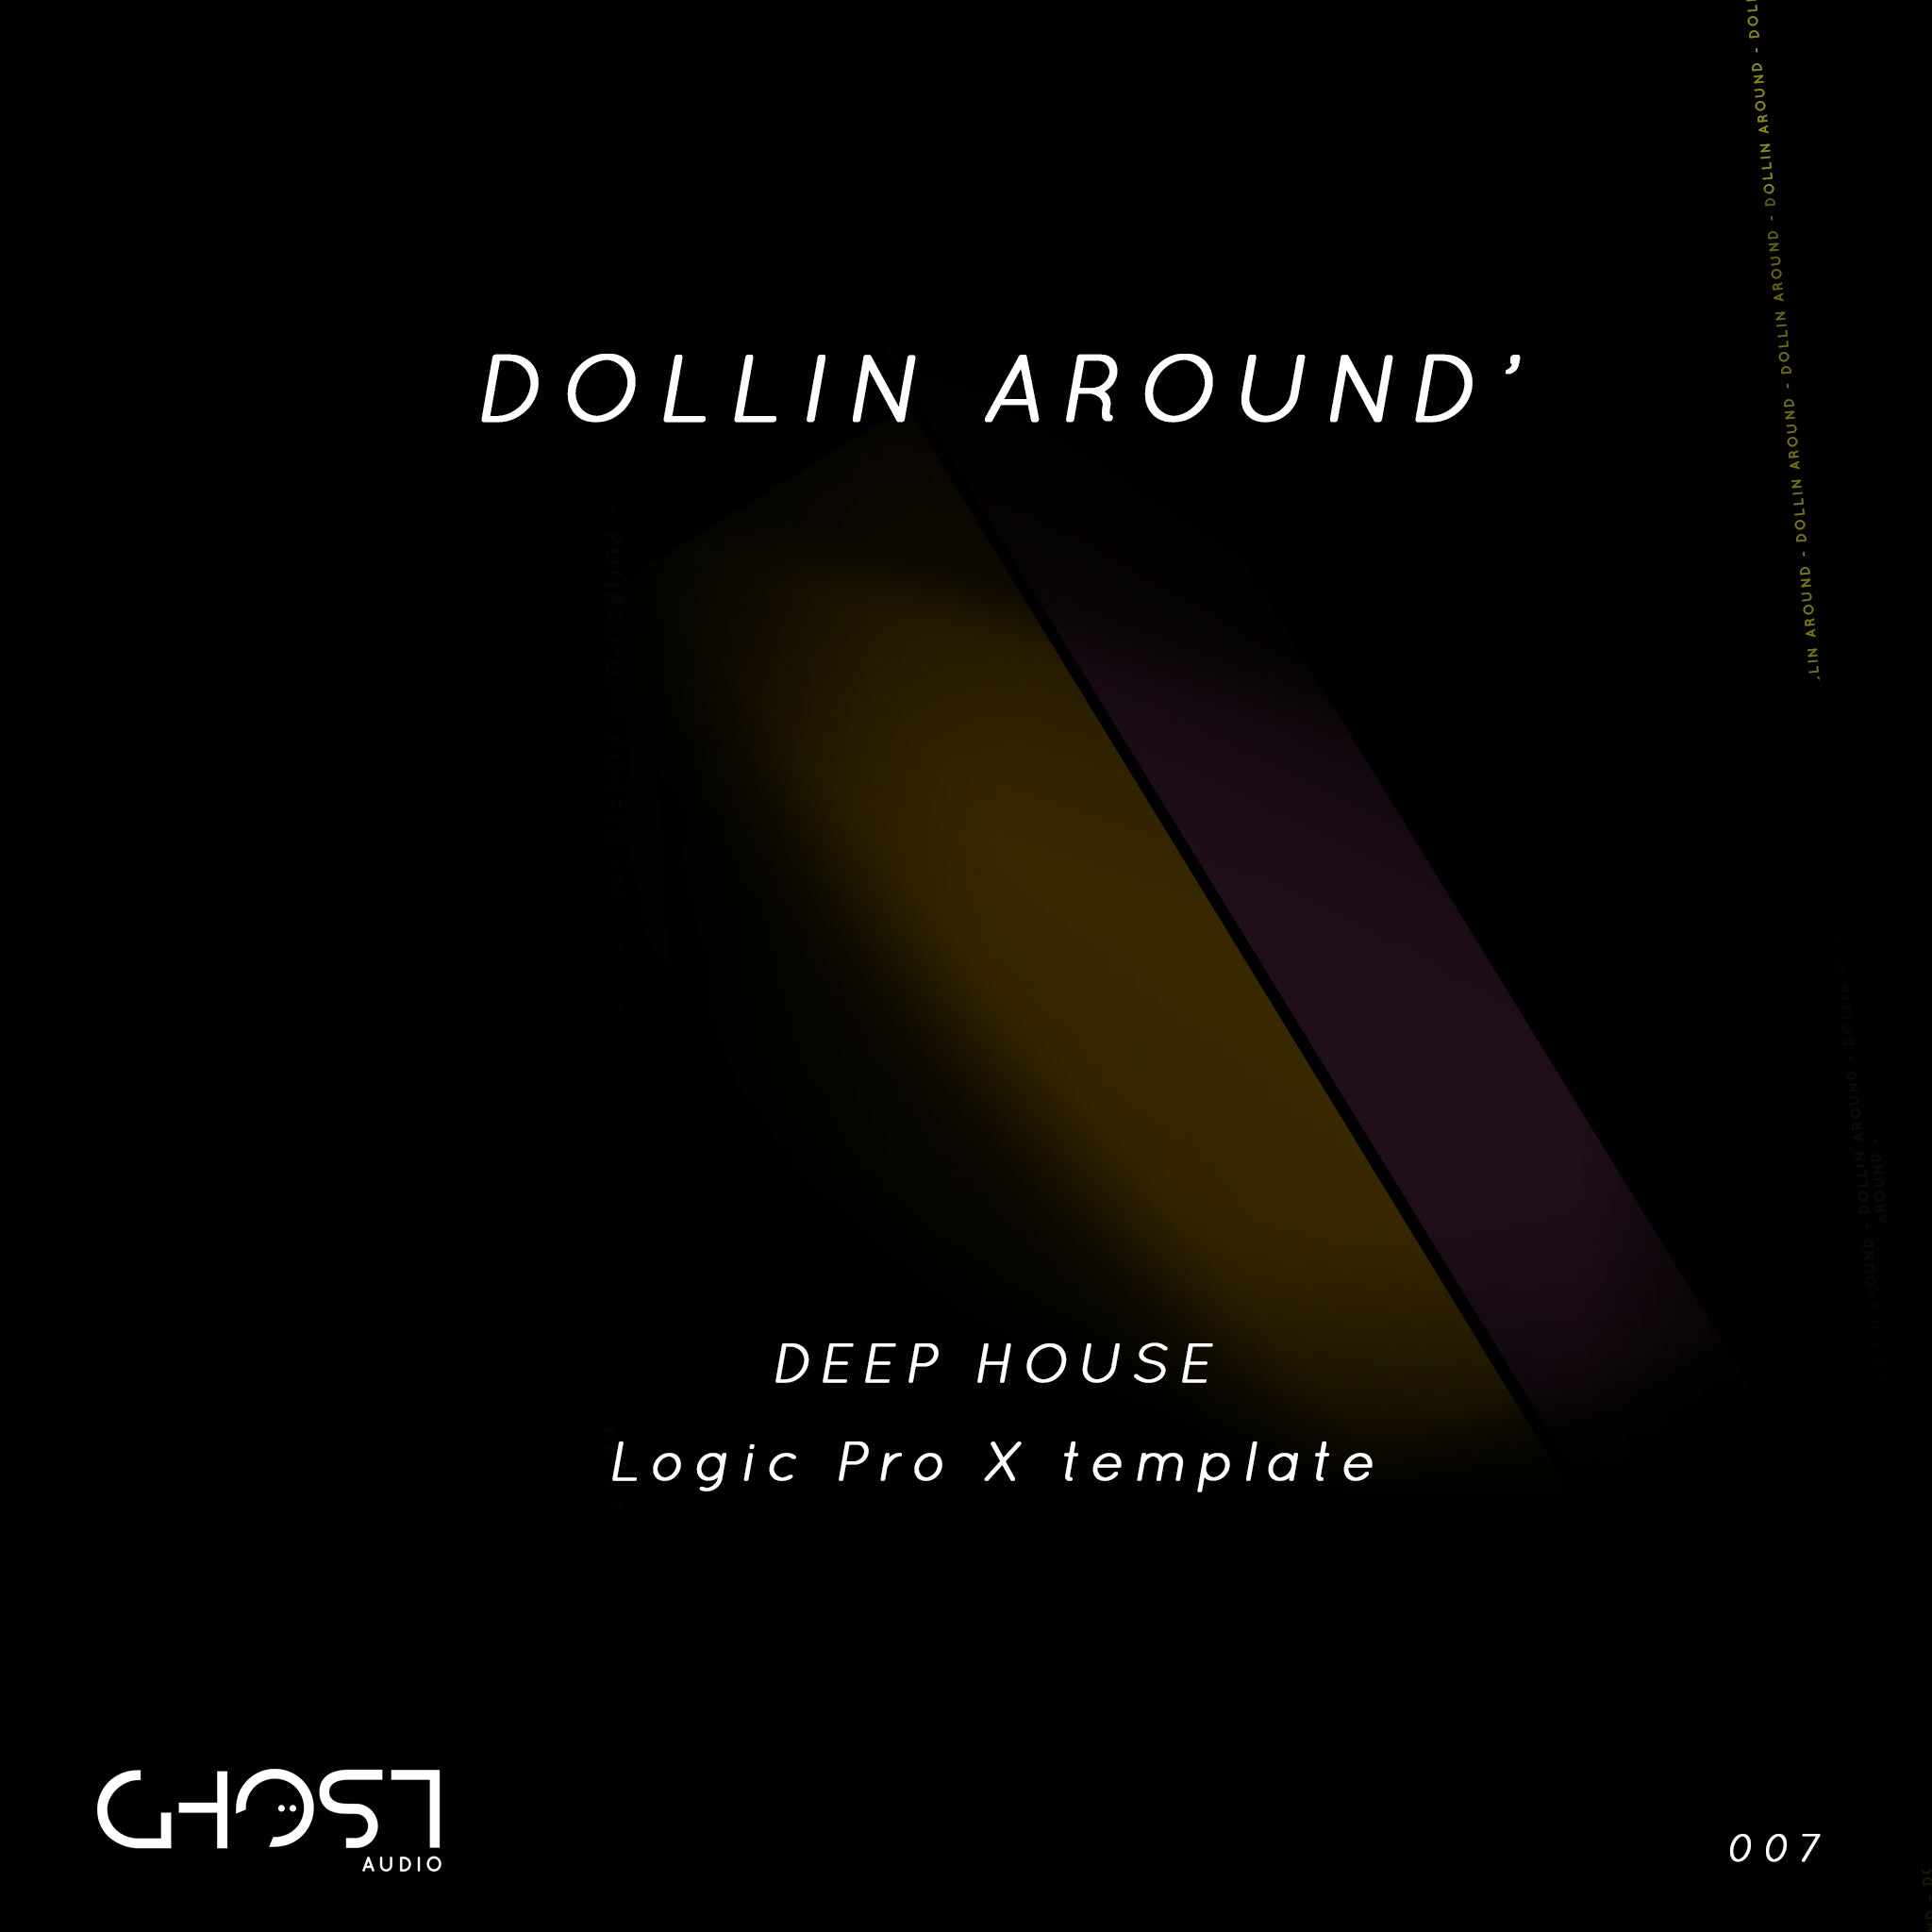 DOLLIN' AROUND - DEEP HOUSE ( LOGIC PRO X TEMPLATE )